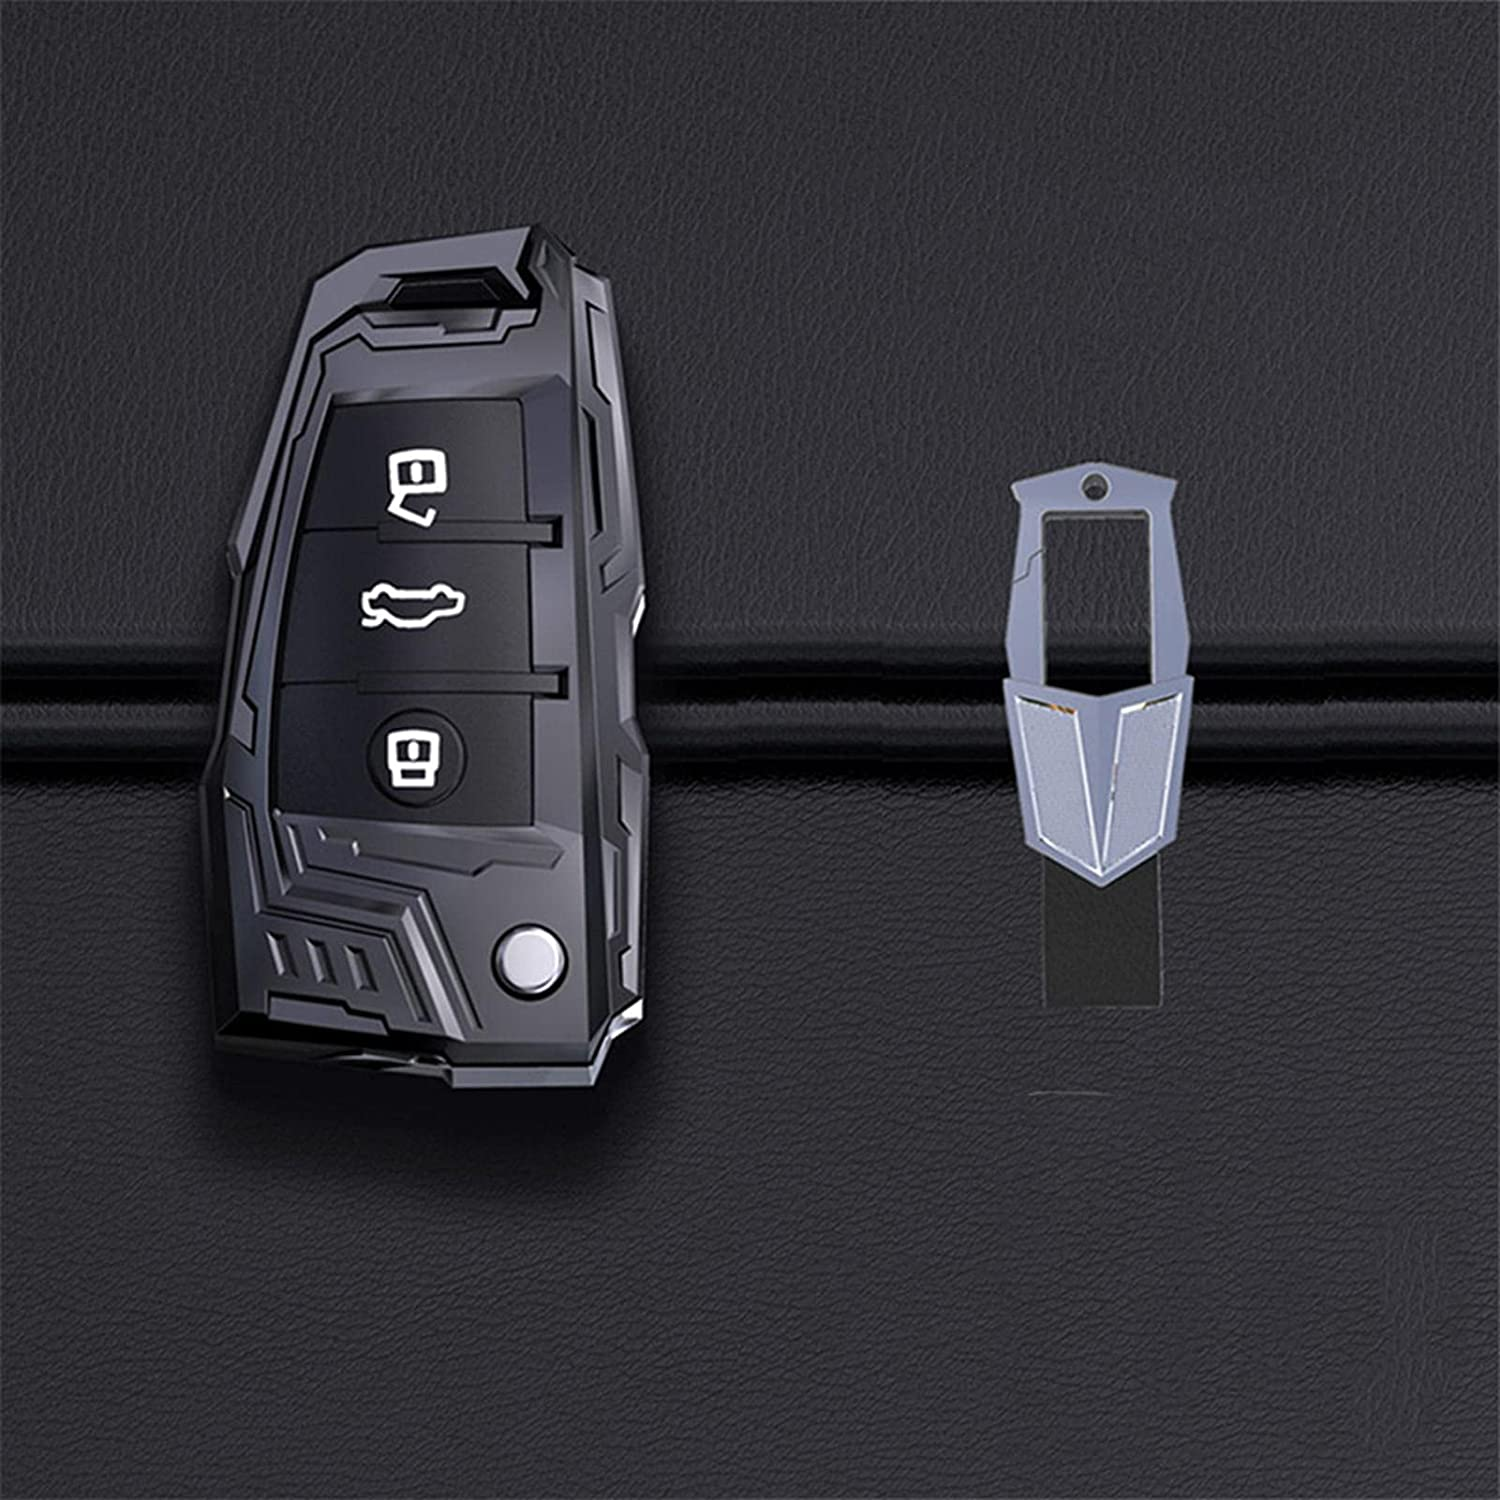 Zinc Alloy Lowest price challenge Flip Car Remote Key Protect Max 76% OFF Case Shell Cover for Fit